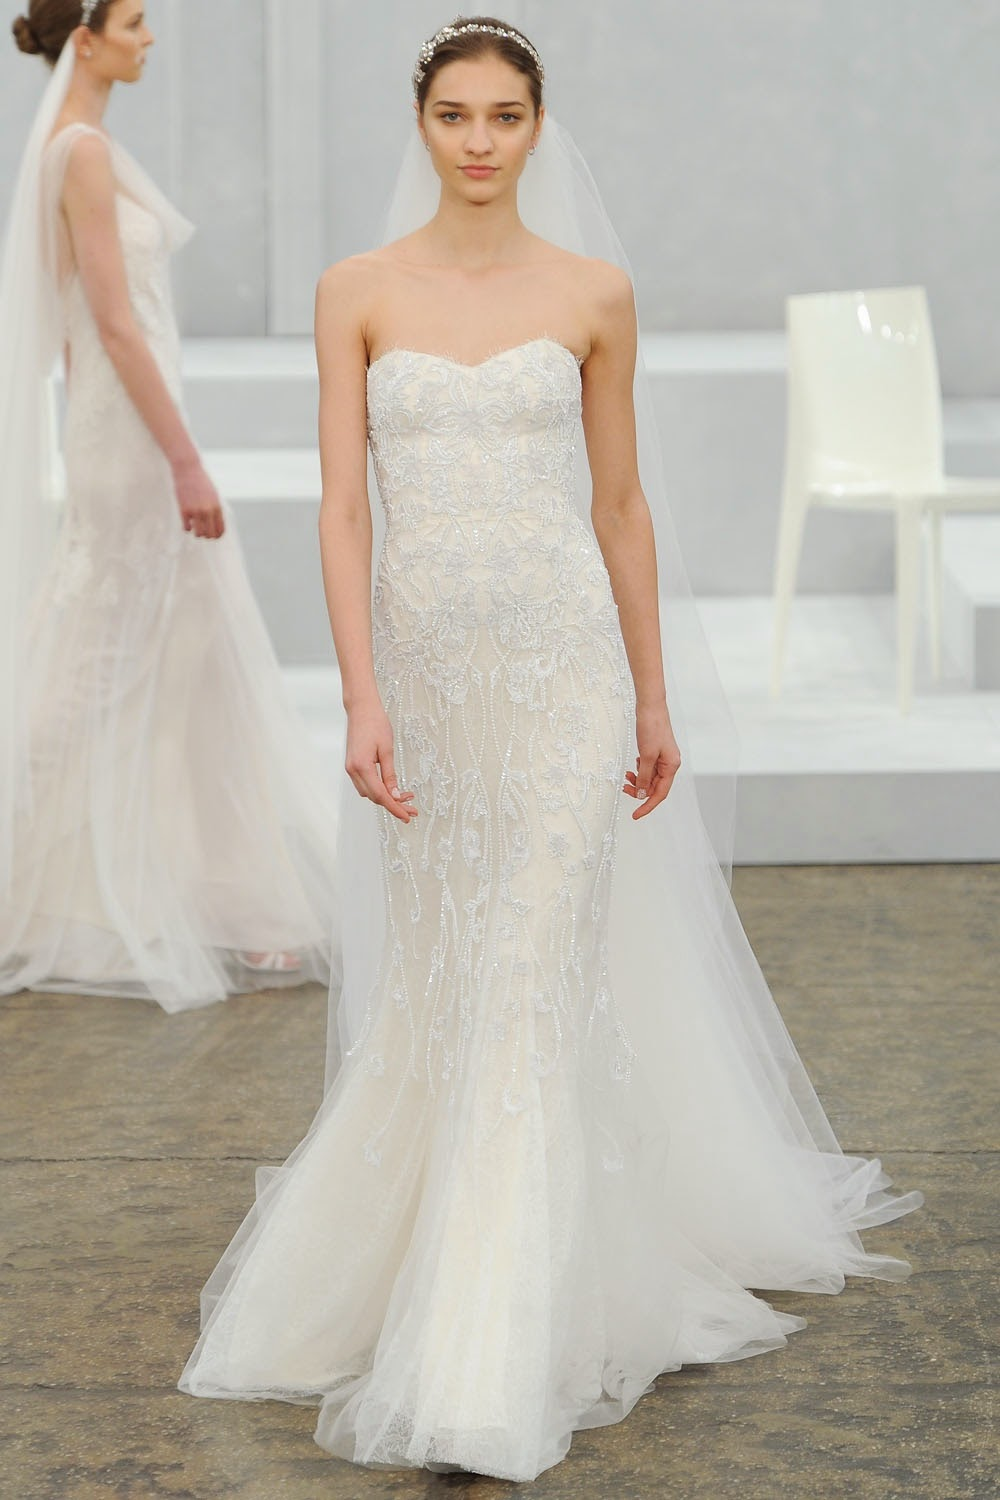 Monique lhuillier spring 2015 wedding dresses runway for Monique lhuillier wedding dress